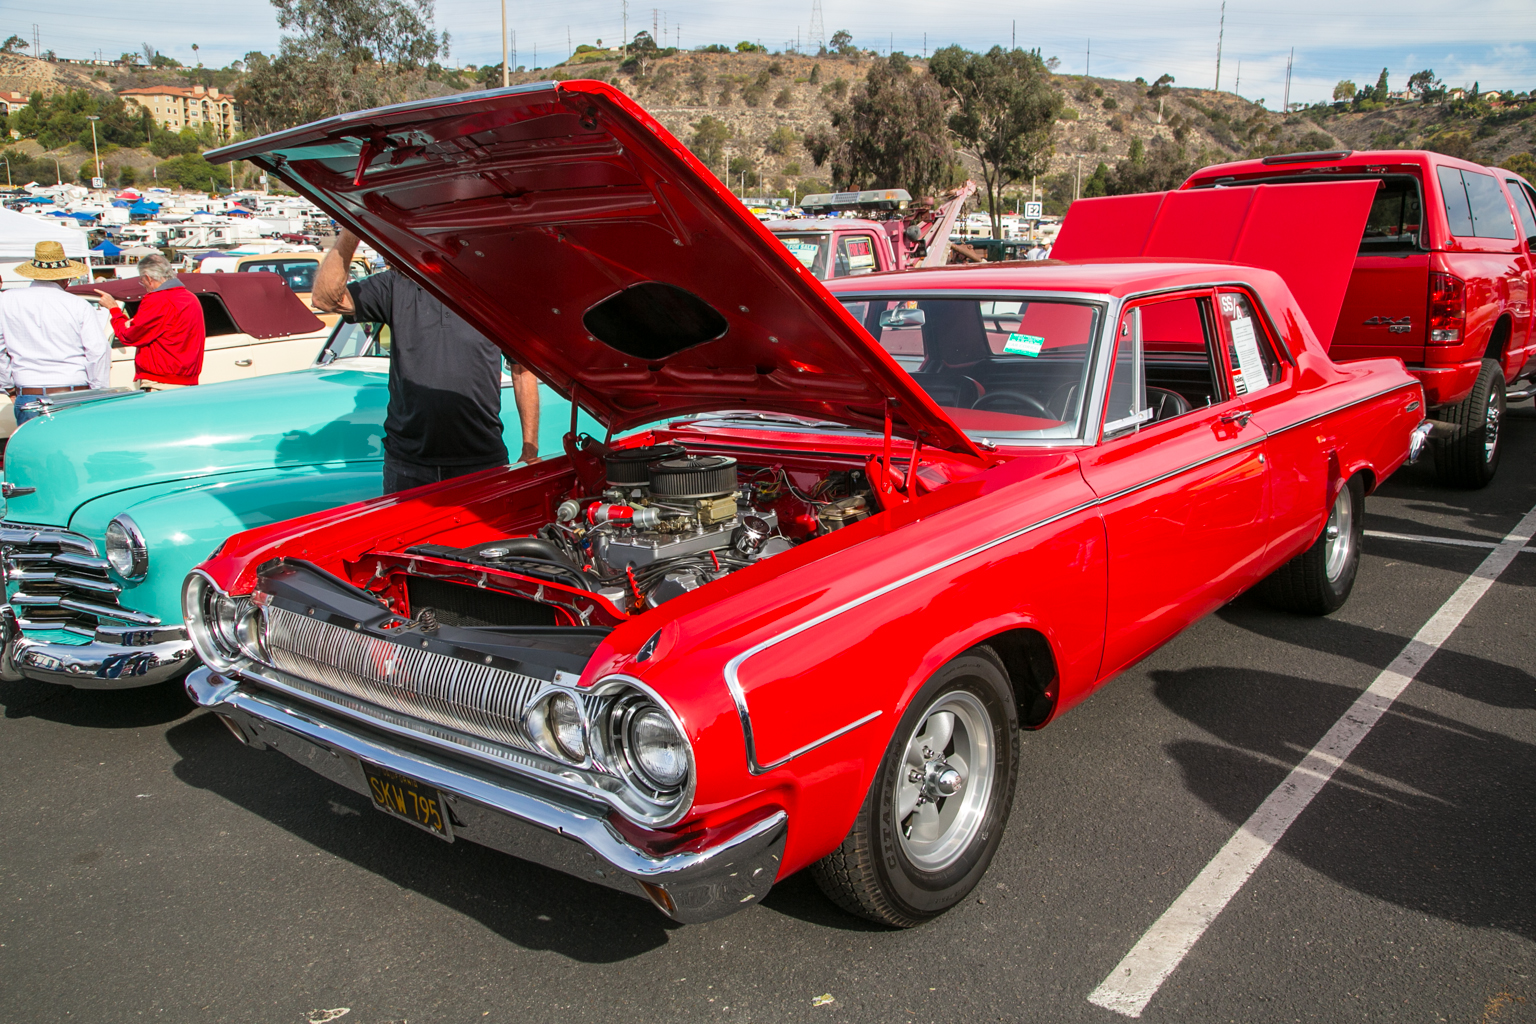 Gallery: More BS Approved Iron For Sale At The Big 3 Swap Meet In San Diego